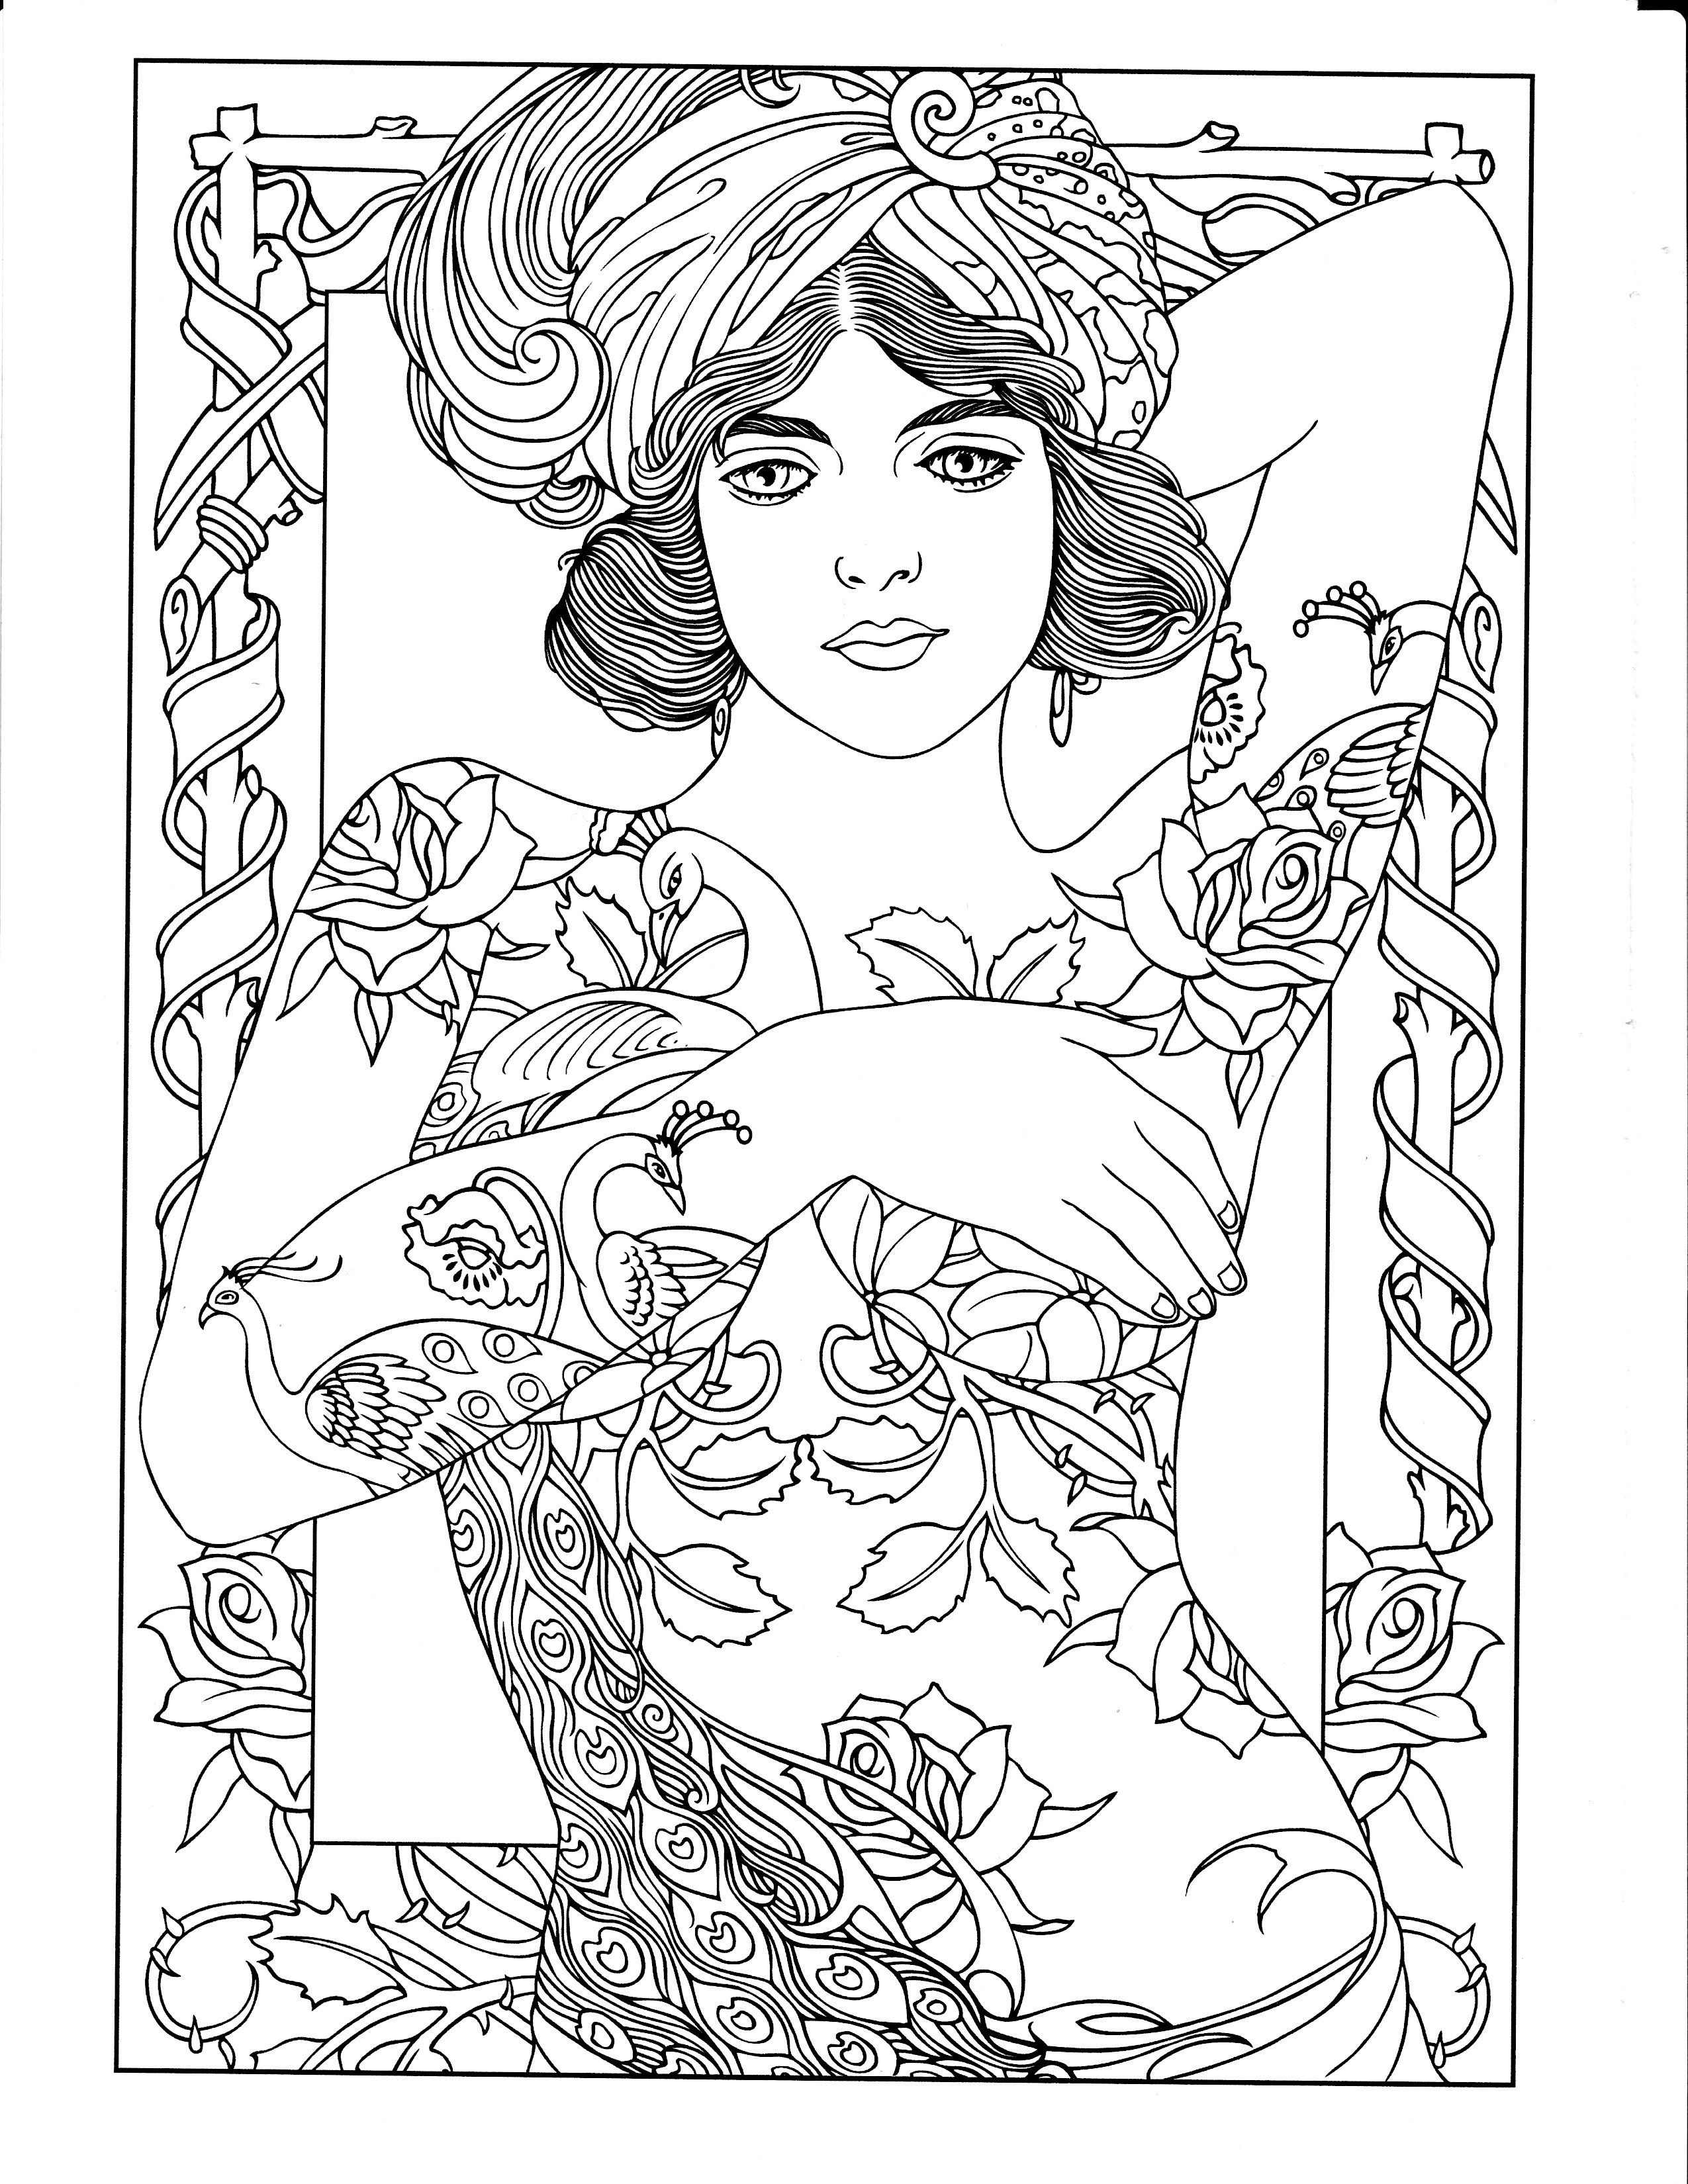 Printable coloring page Designs coloring books